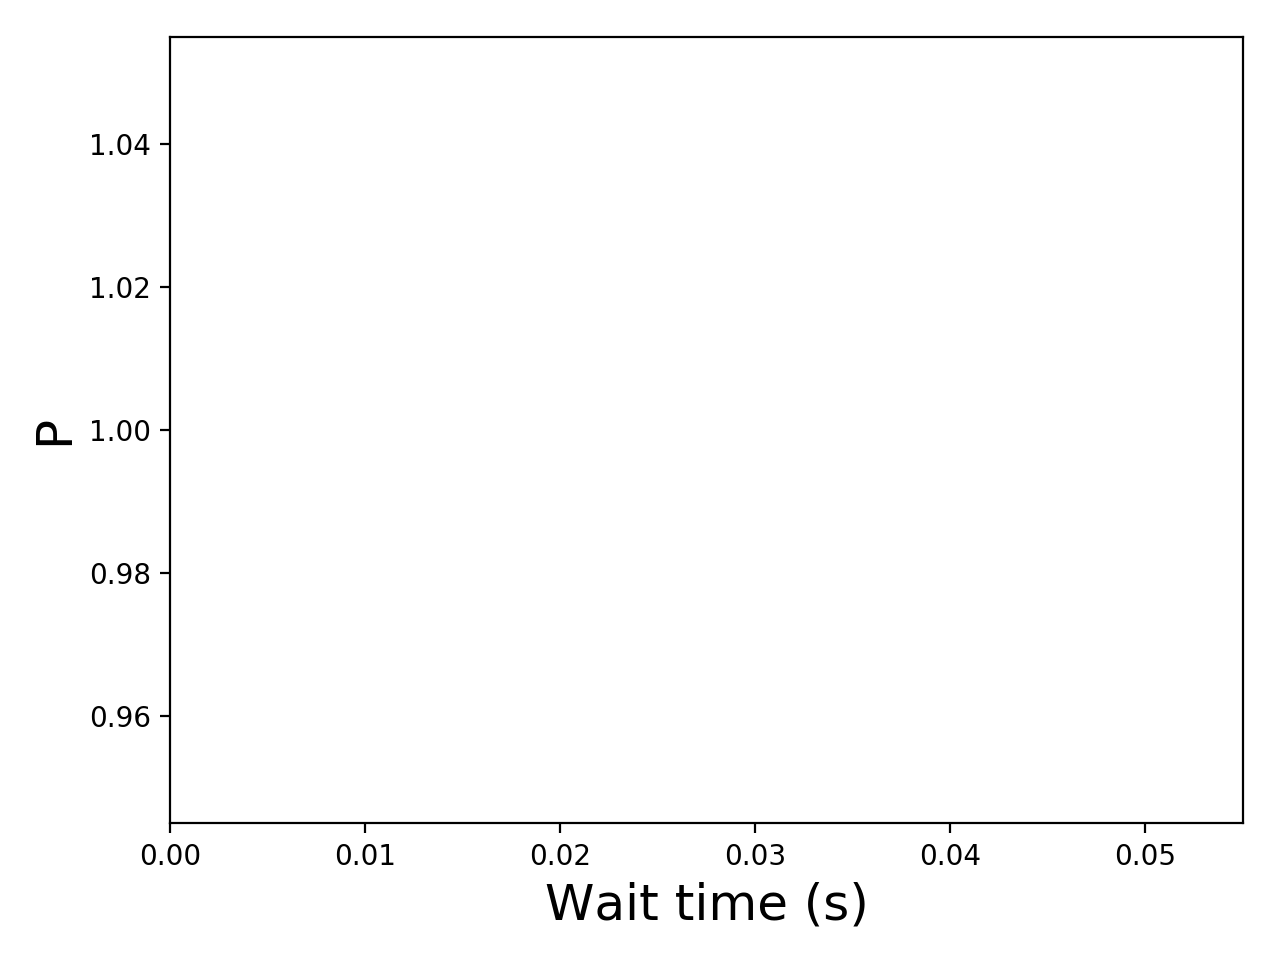 Task wait time CDF graph for the askalon-new_ee45 trace.